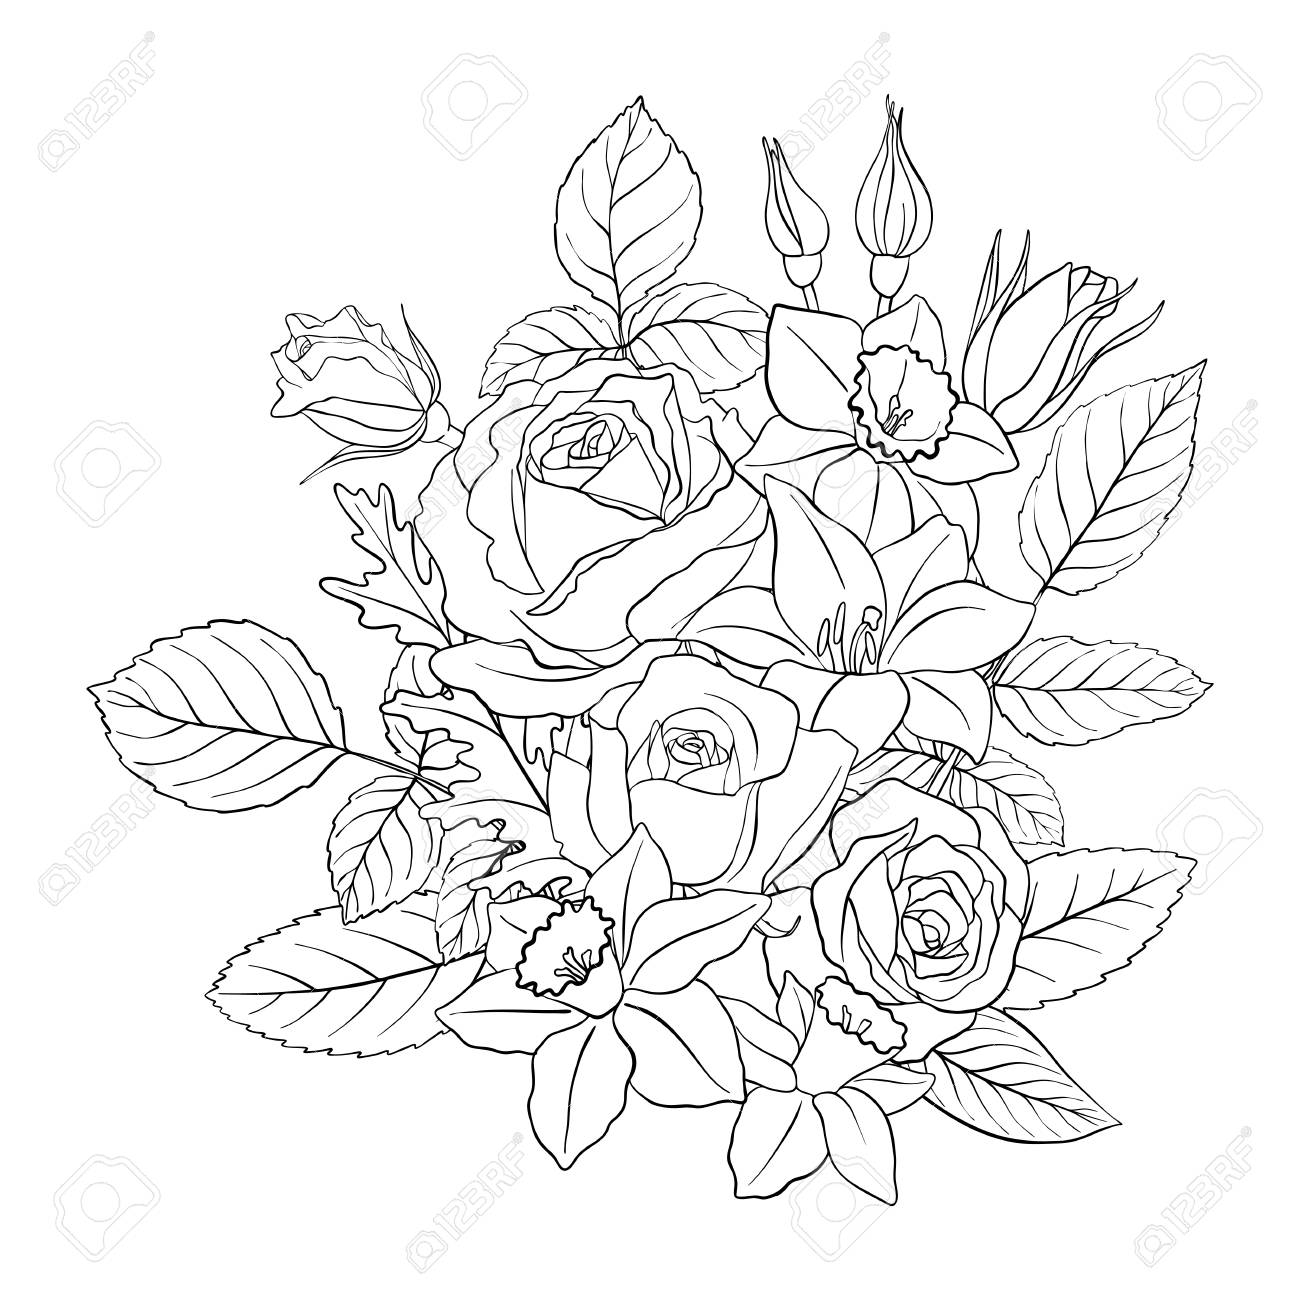 Line Drawing Vector Floral Composition With Flowers Buds And Royalty Free Cliparts Vectors And Stock Illustration Image 113996108